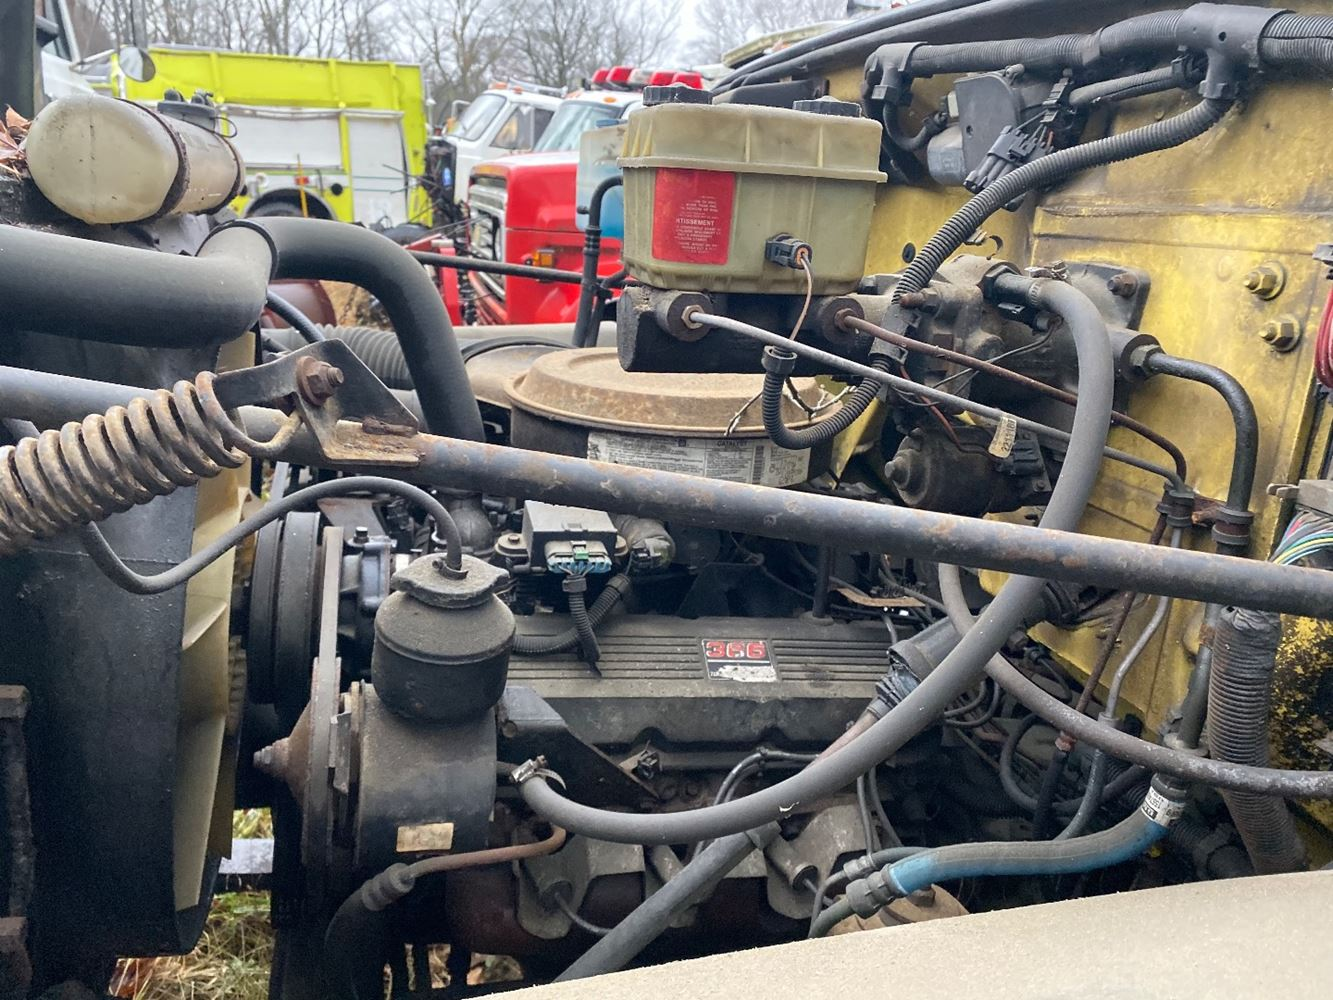 1992 GM/CHEV (HD) 366 GAS ENGINE ASSEMBLY TRUCK PARTS #690532